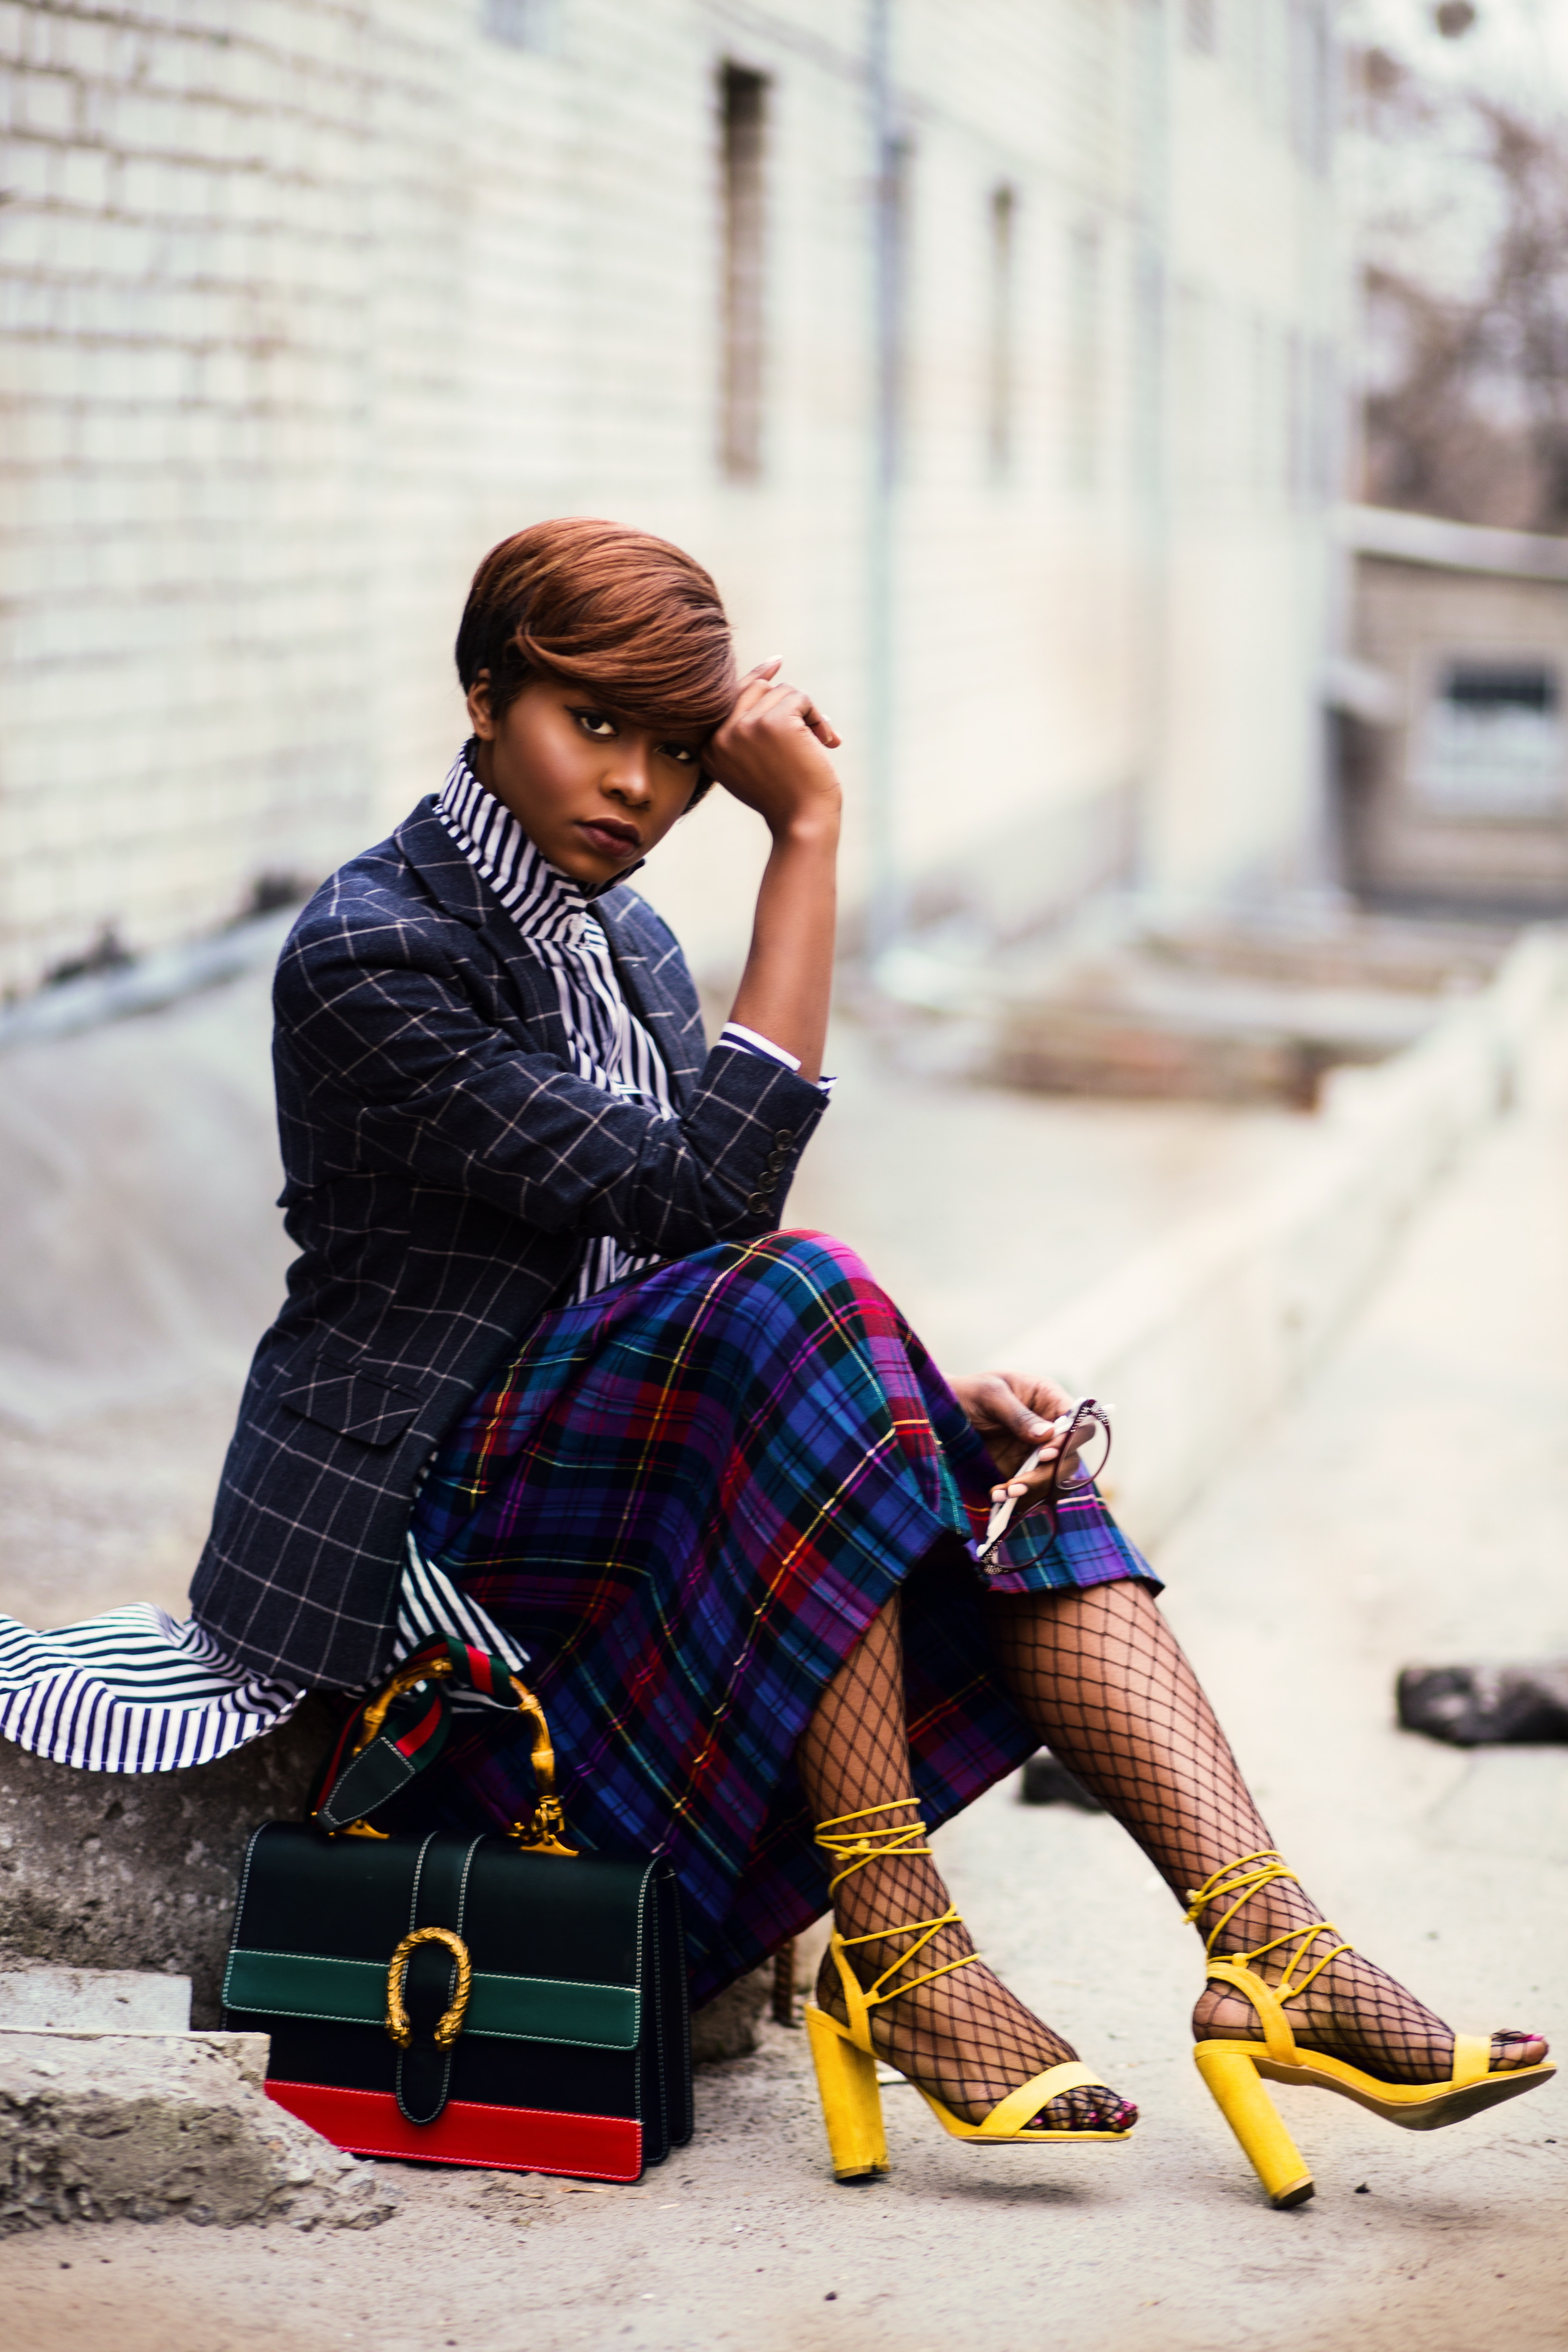 Woman wearing black and grey tattersall blazer and multicolored plaid skirt with black mesh stocking and yellow chunky heeled sandals sitting on grey concrete pathway photo